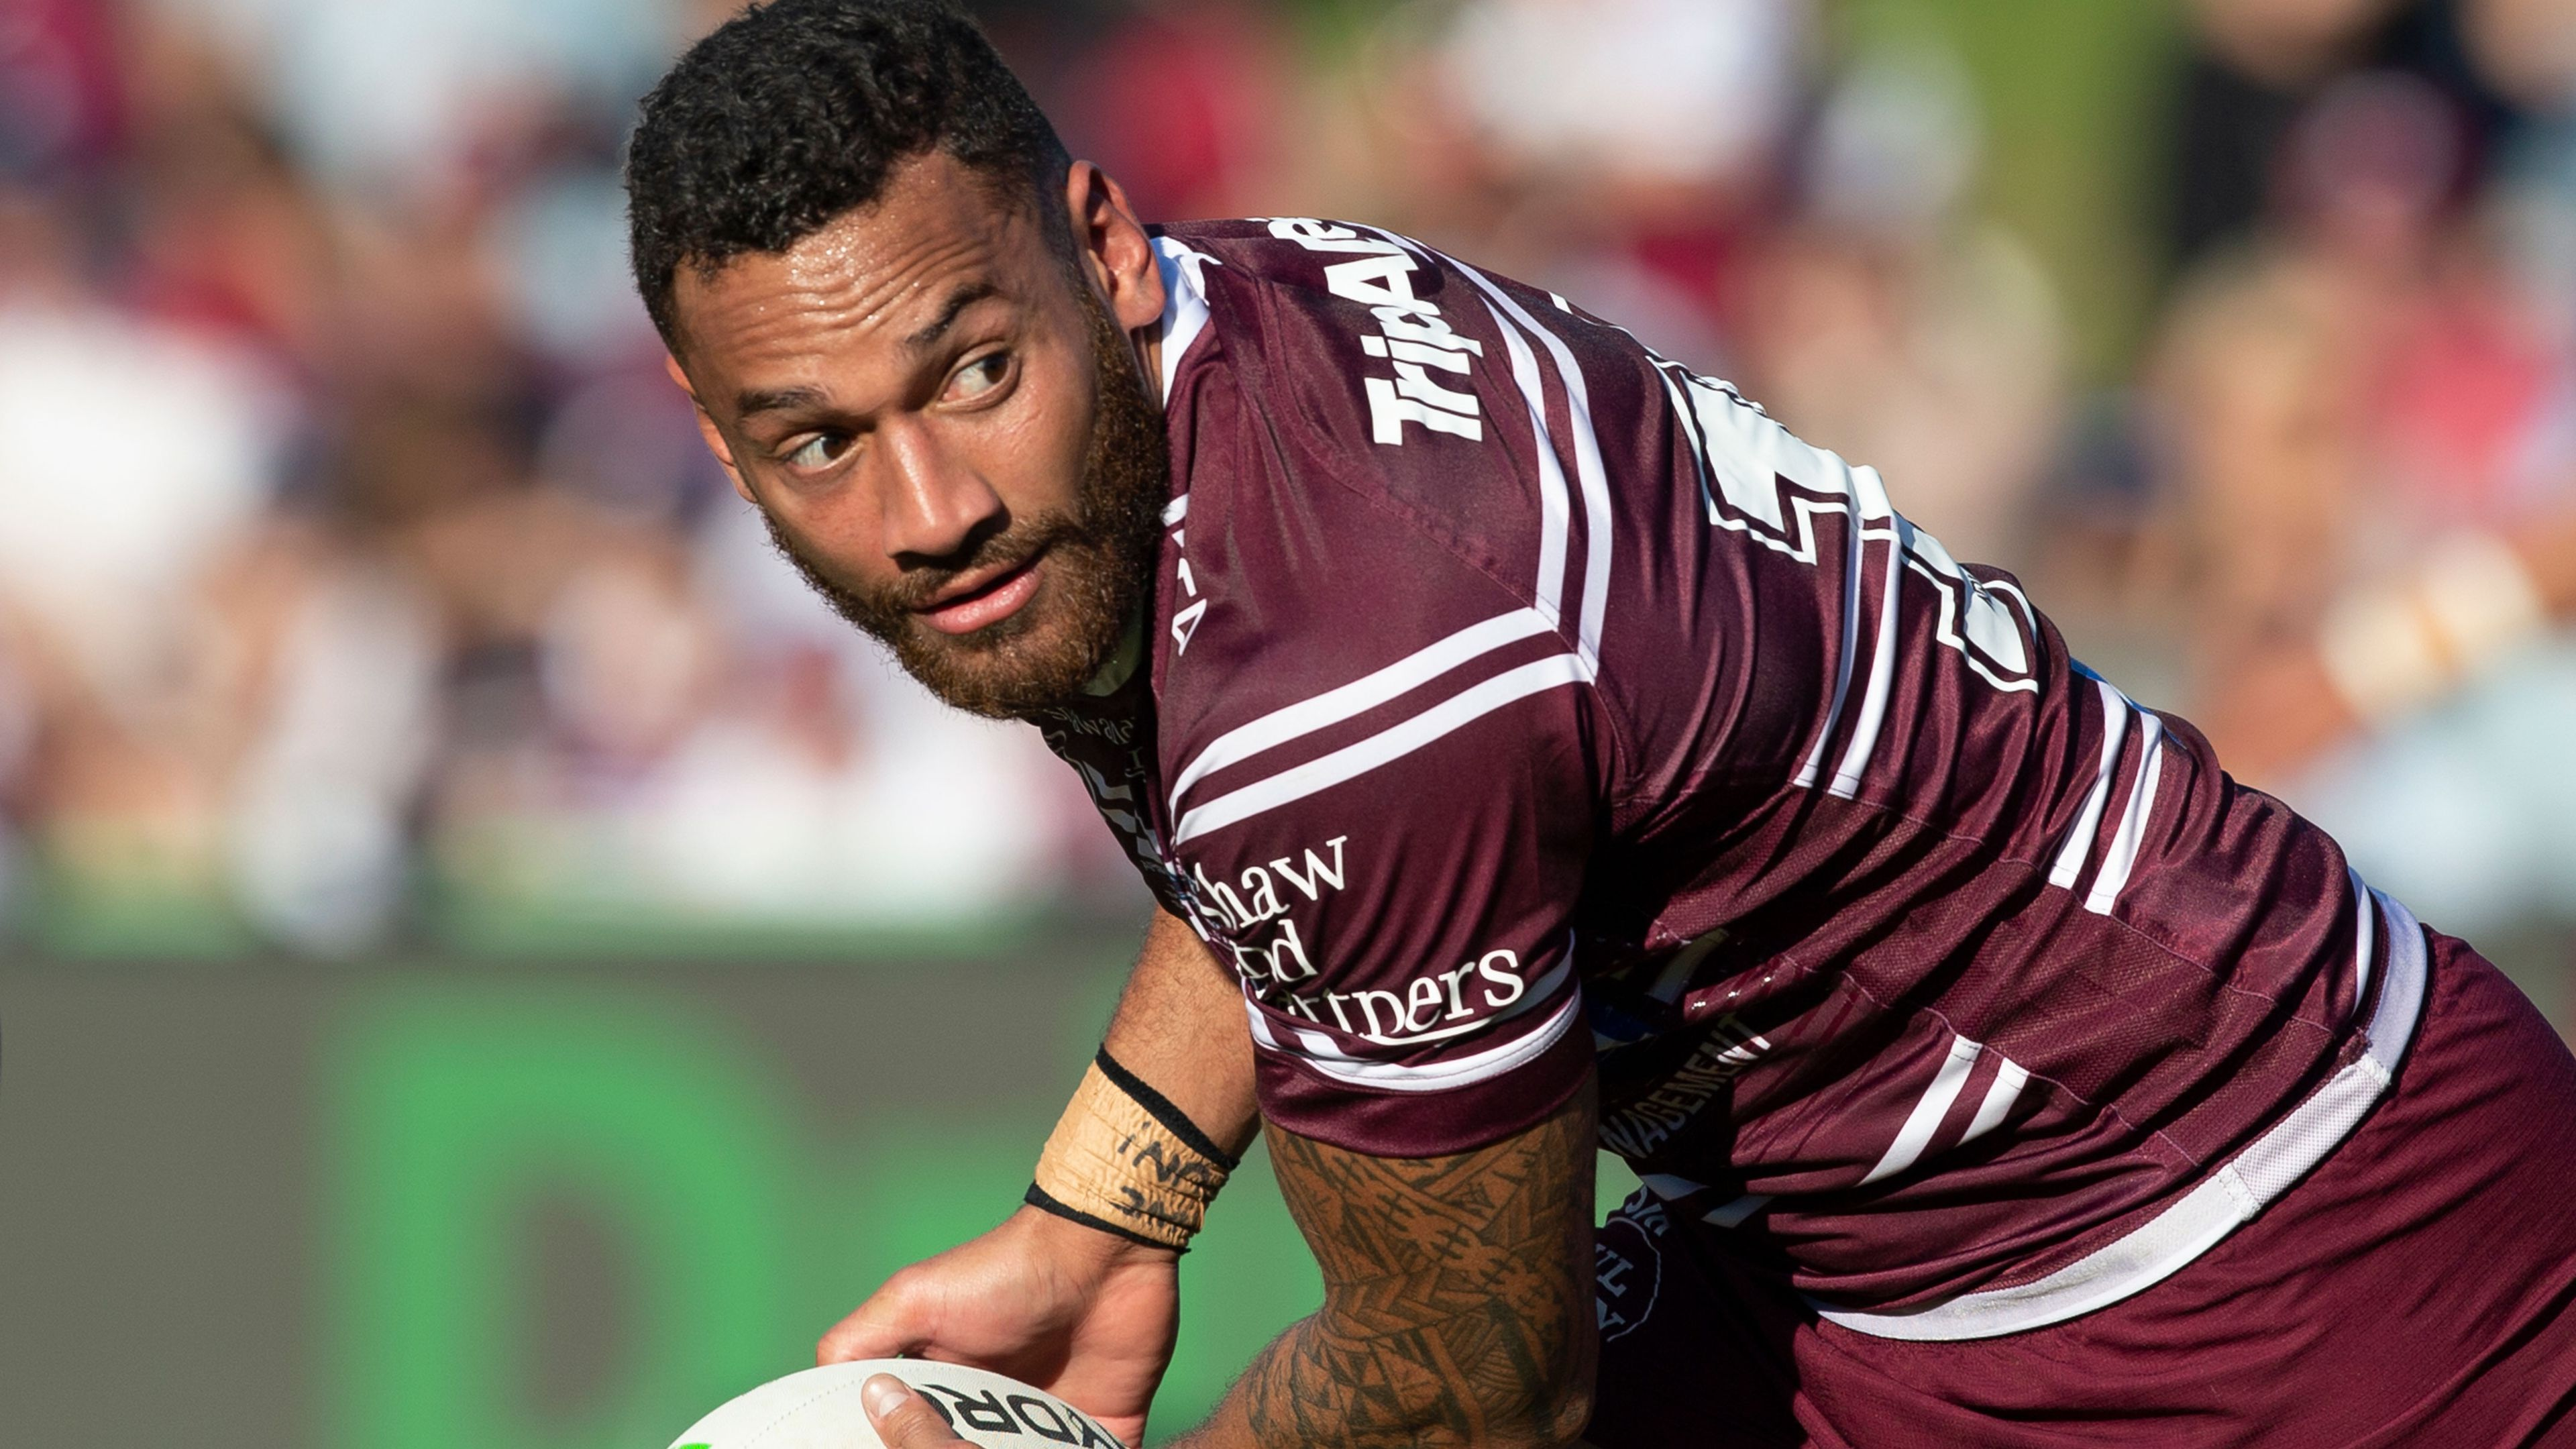 Apisai Koroisau reveals he saw tap on the shoulder coming at Manly